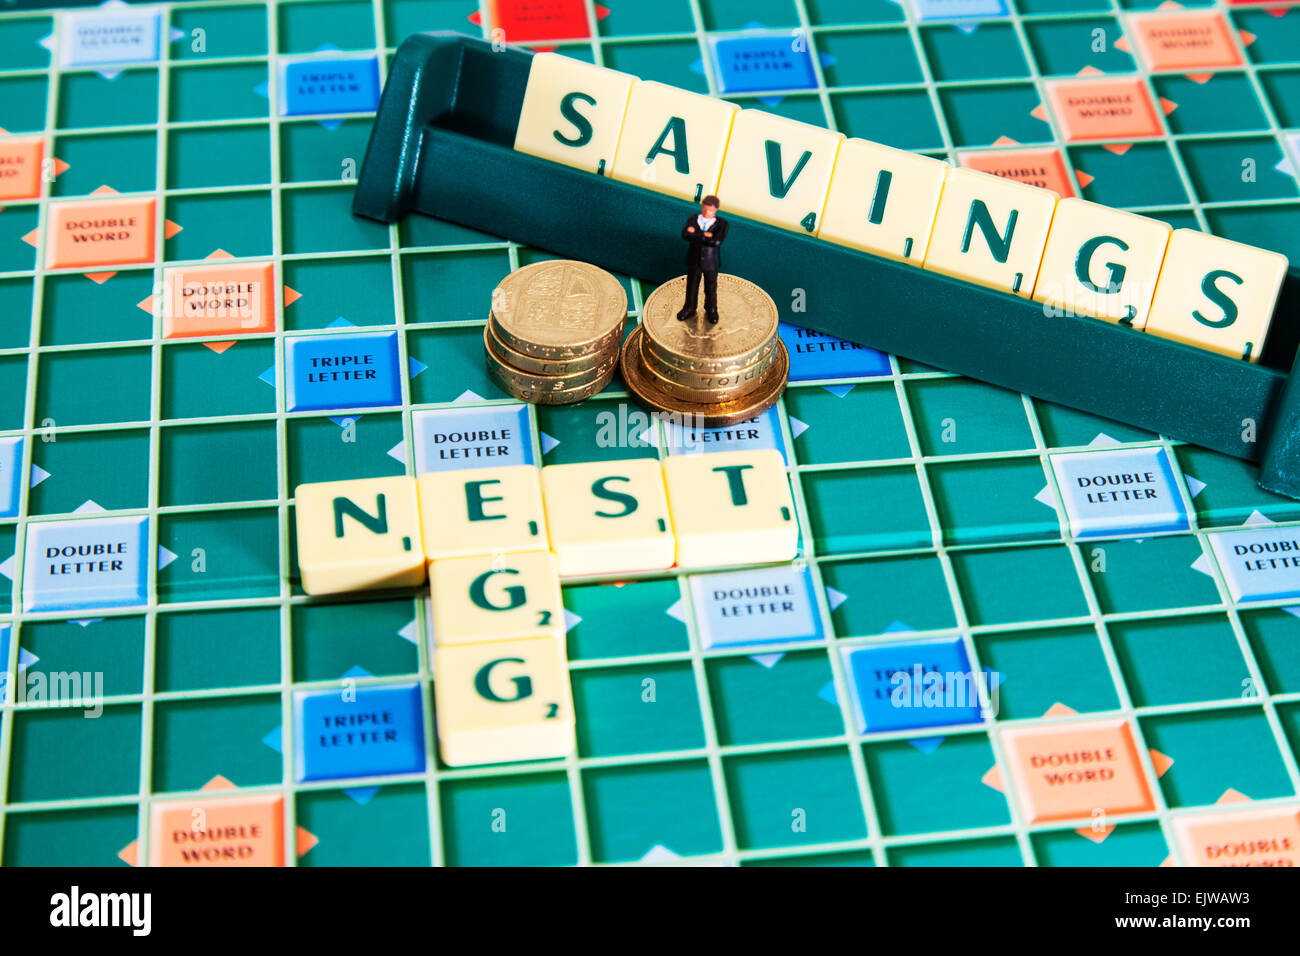 nest egg savings money pound coins pension save rainy day words fund using scrabble tiles to illustrate spelling - Stock Image